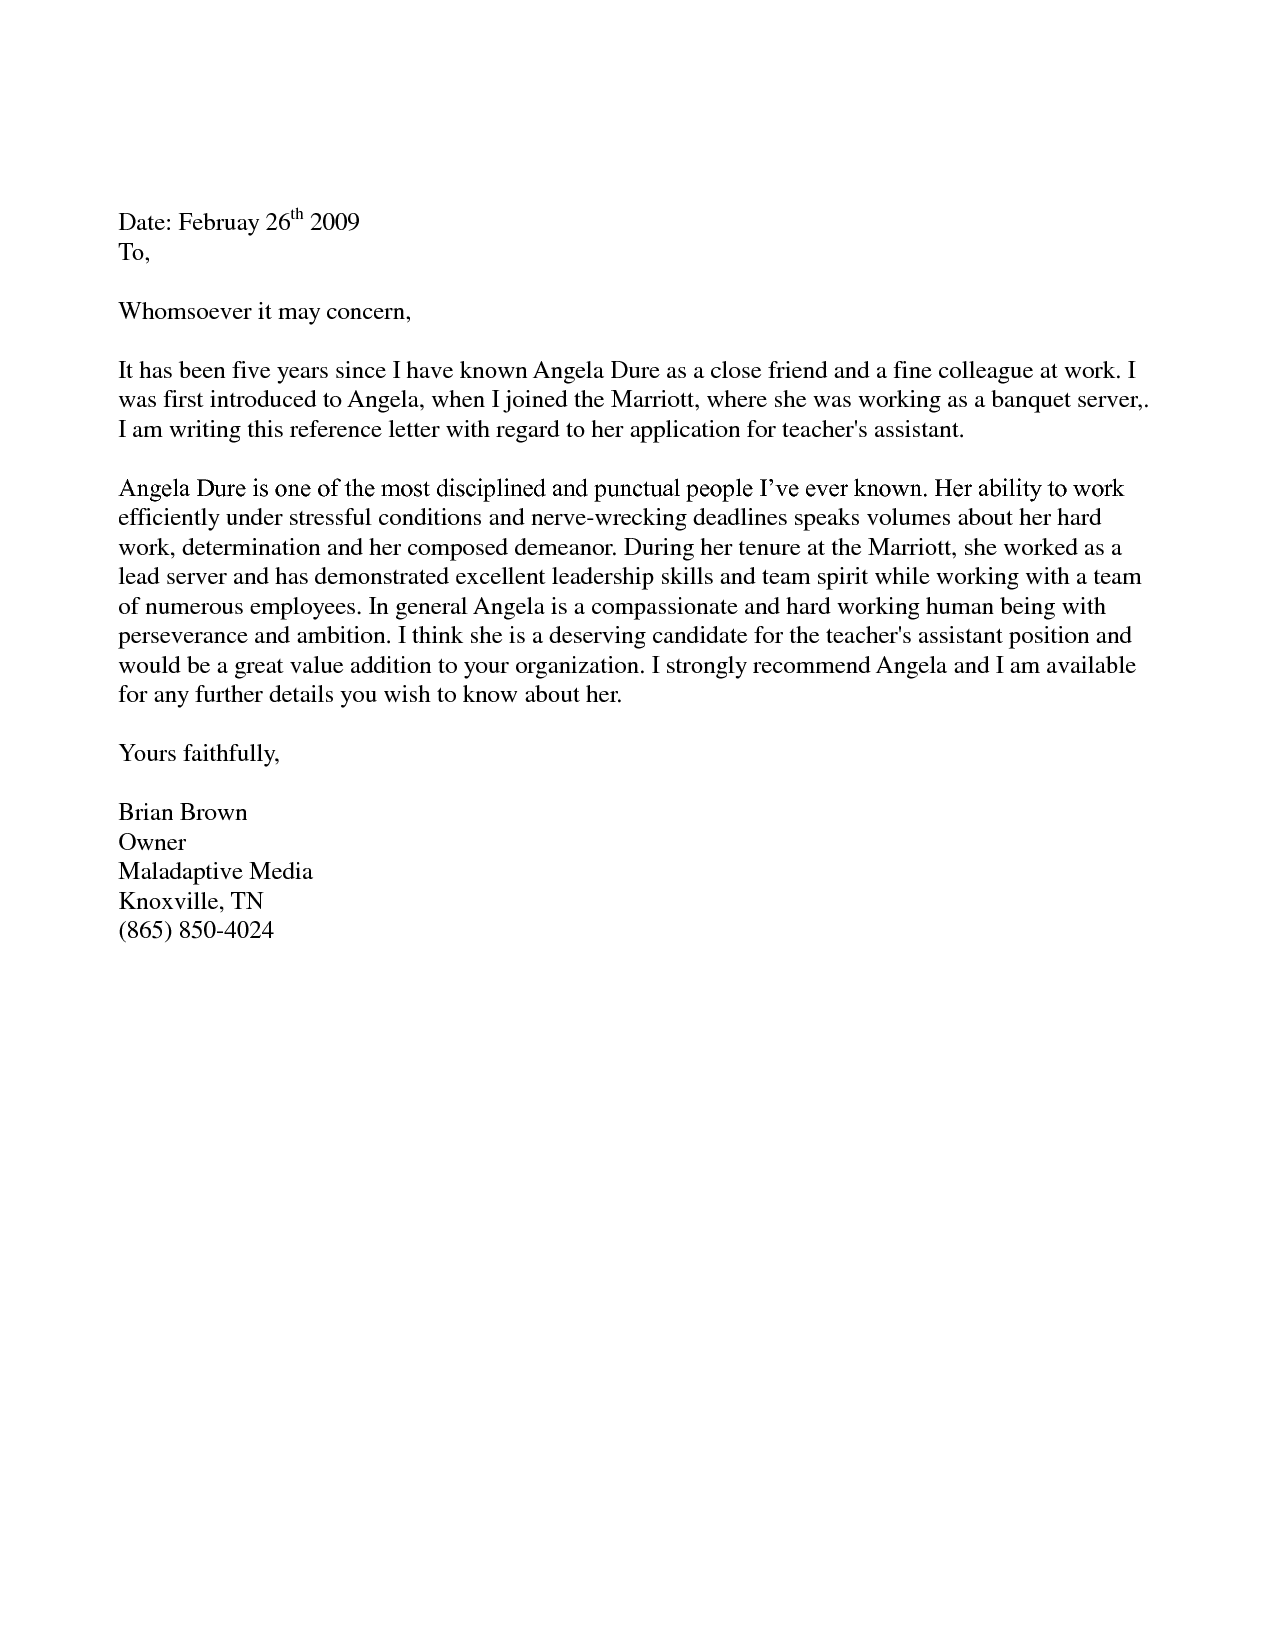 letter of recommendation template for friend